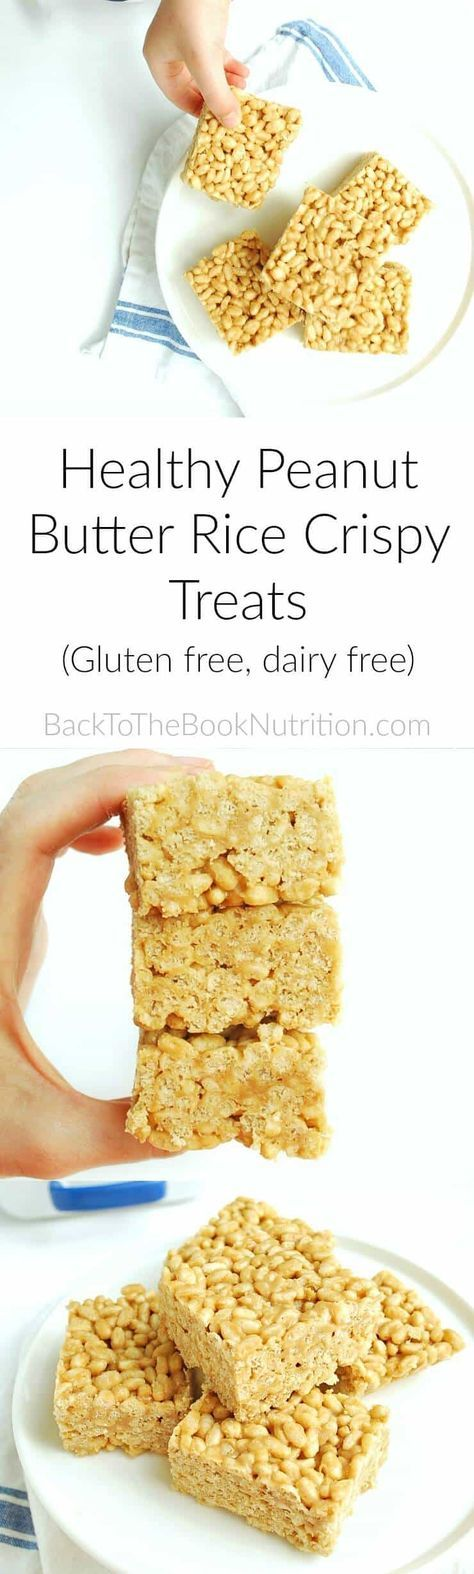 Healthy Peanut Butter Rice Crispy Treats. Gluten free and dairy free with peanut free option | Back To The Book Nutrition